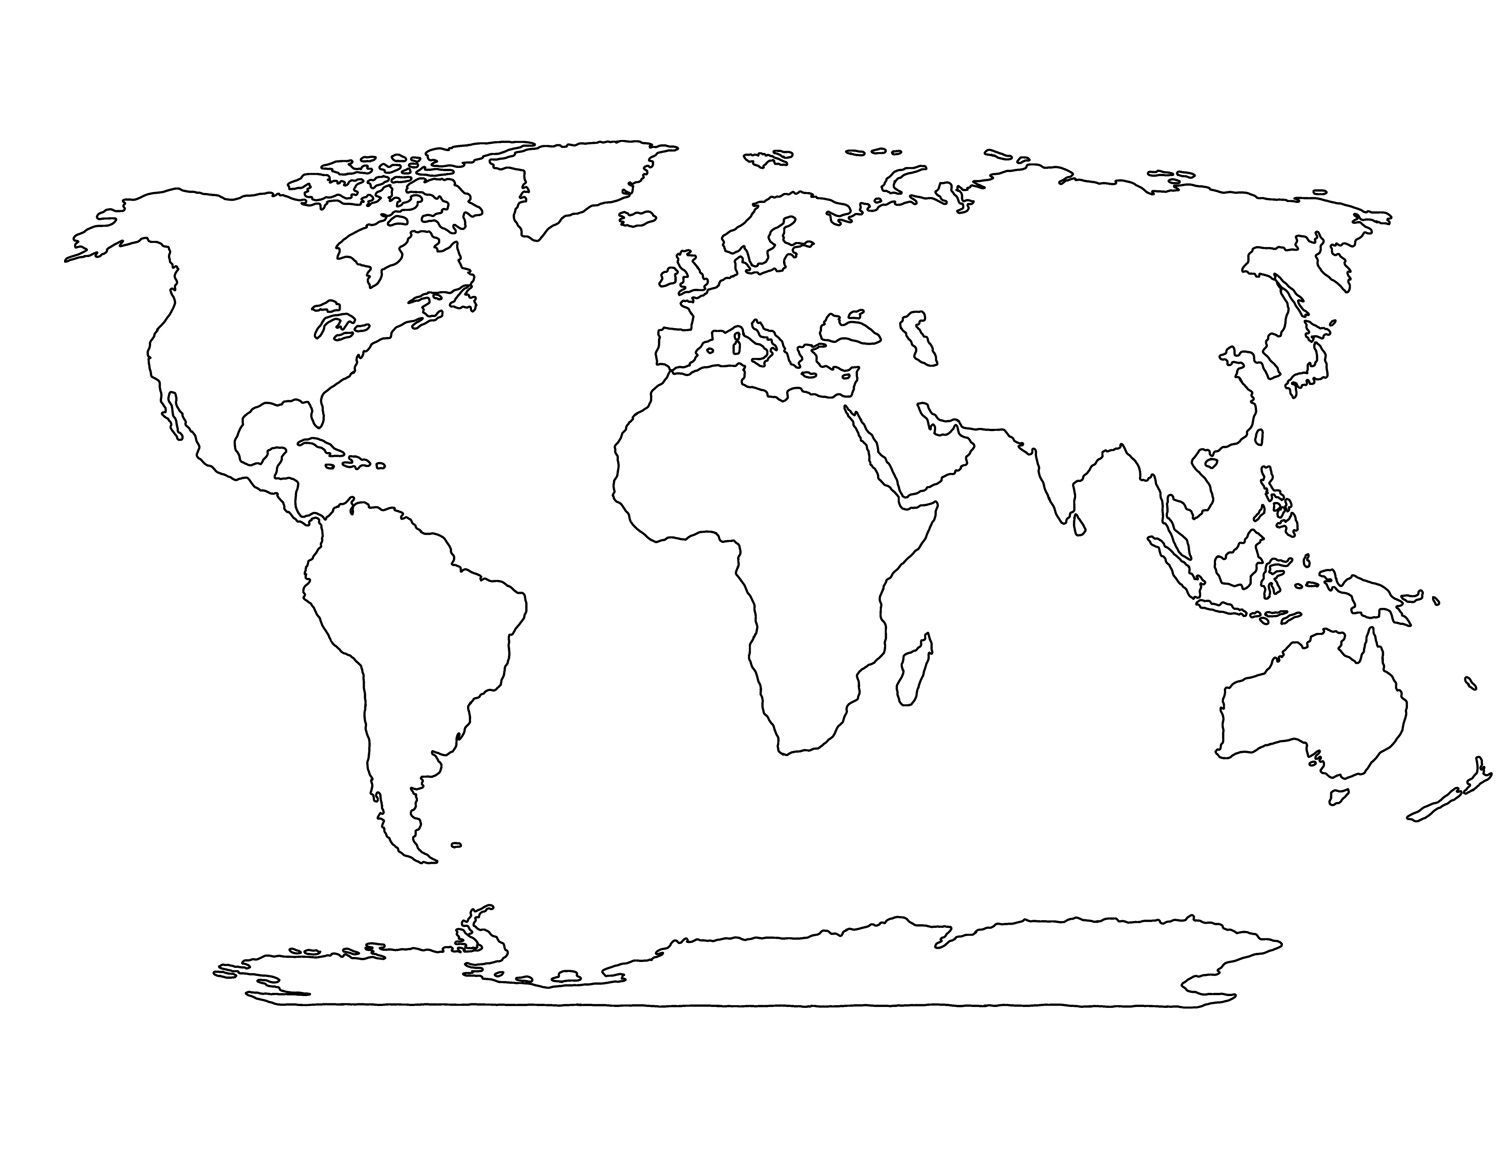 Blank World Map Printable | Social studies | Pinterest | Blank